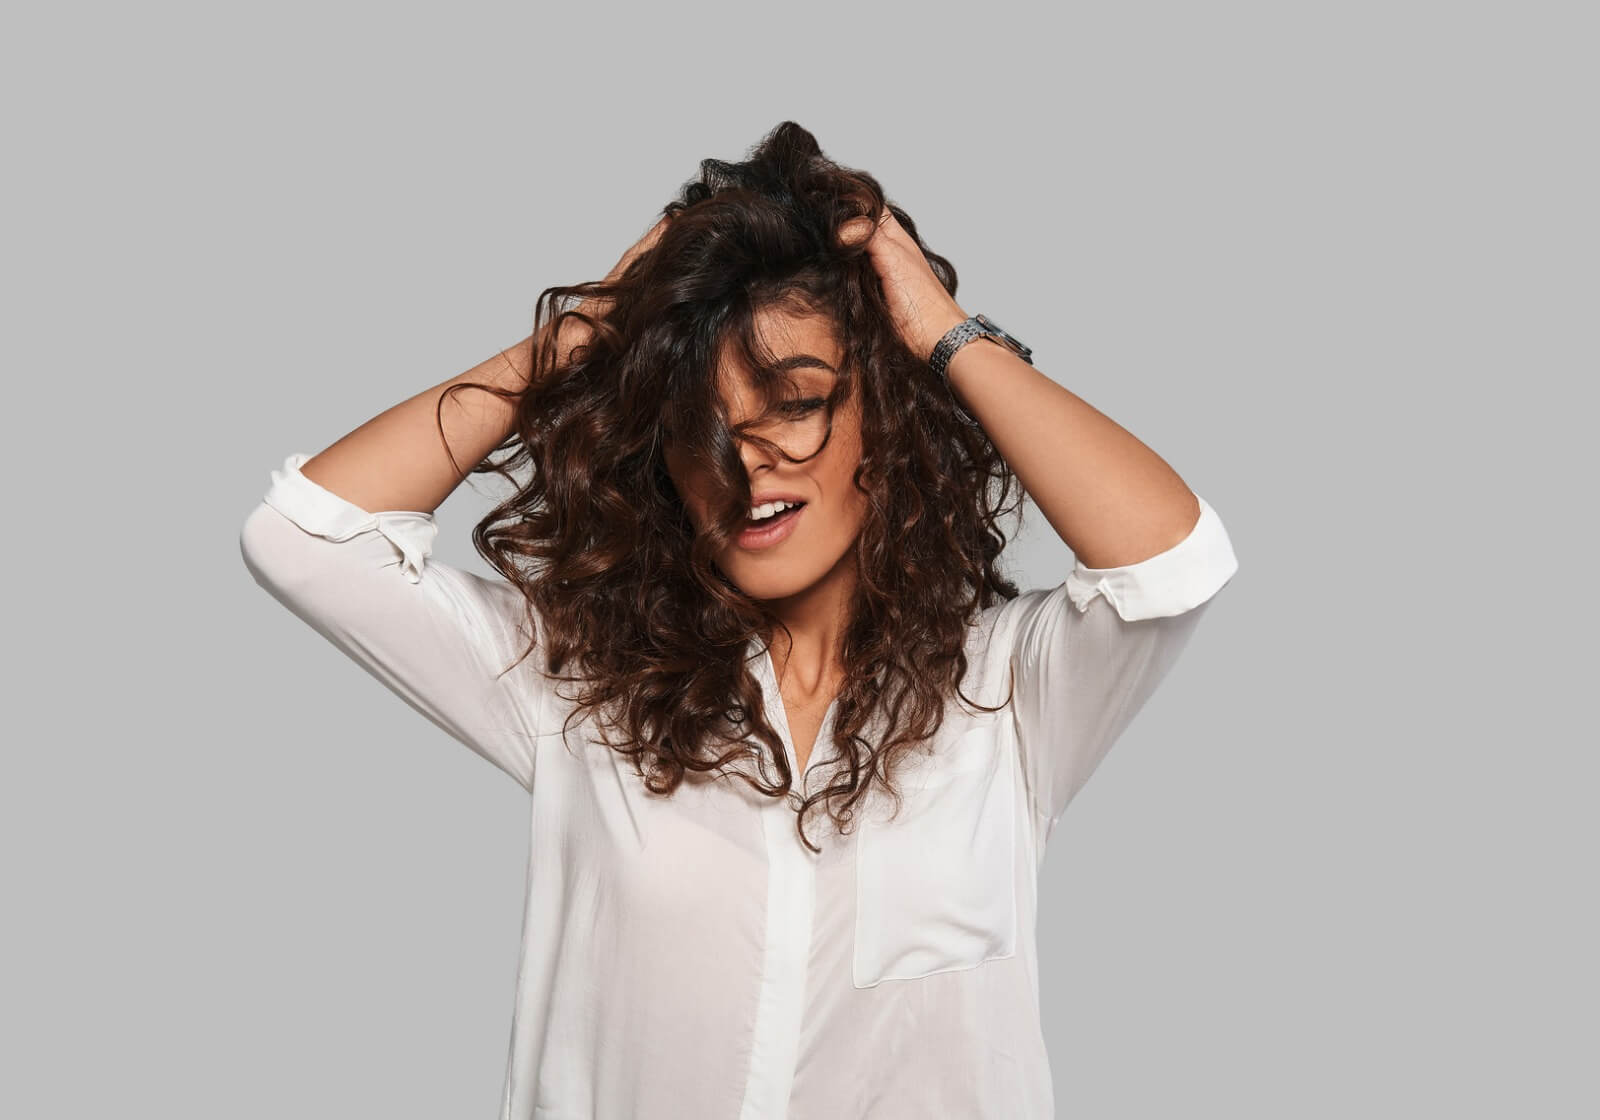 dandruff-vs-dry-scalp-symptoms-causes-remedies